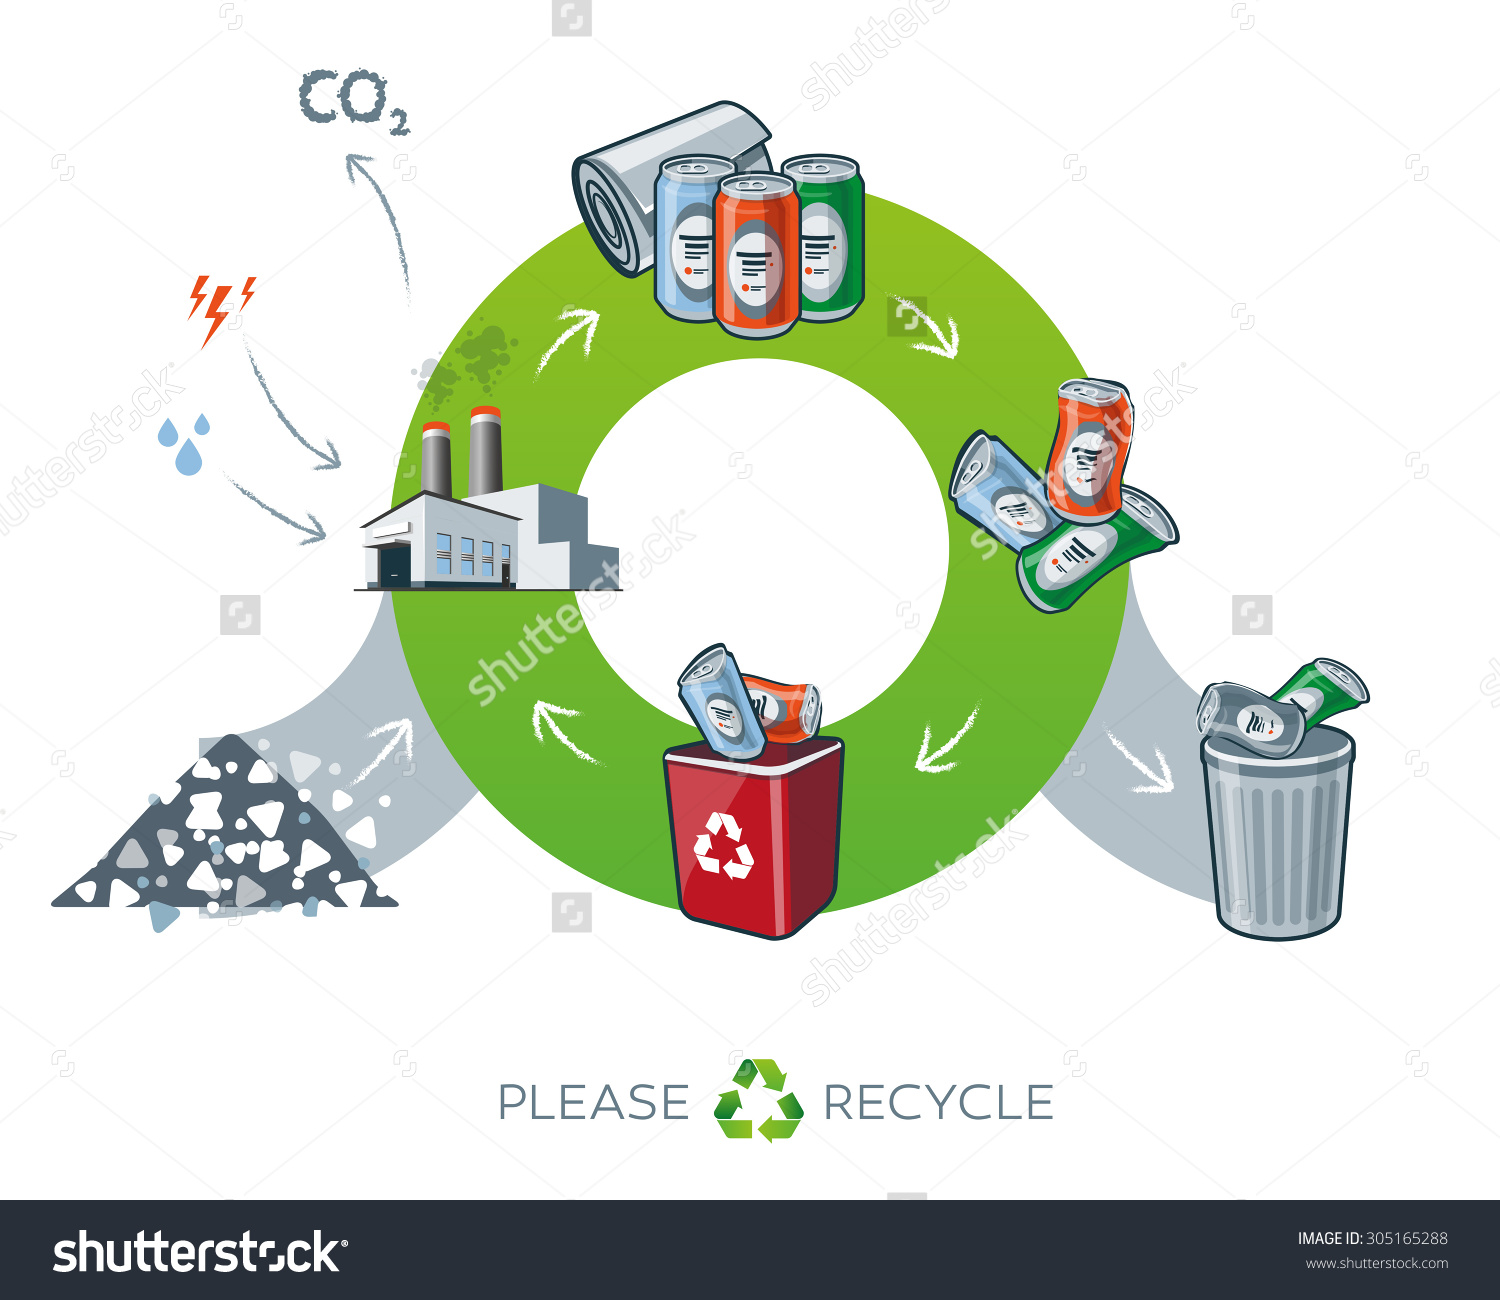 Life Cycle Metal Recycling Simplified Scheme Stock Vector.